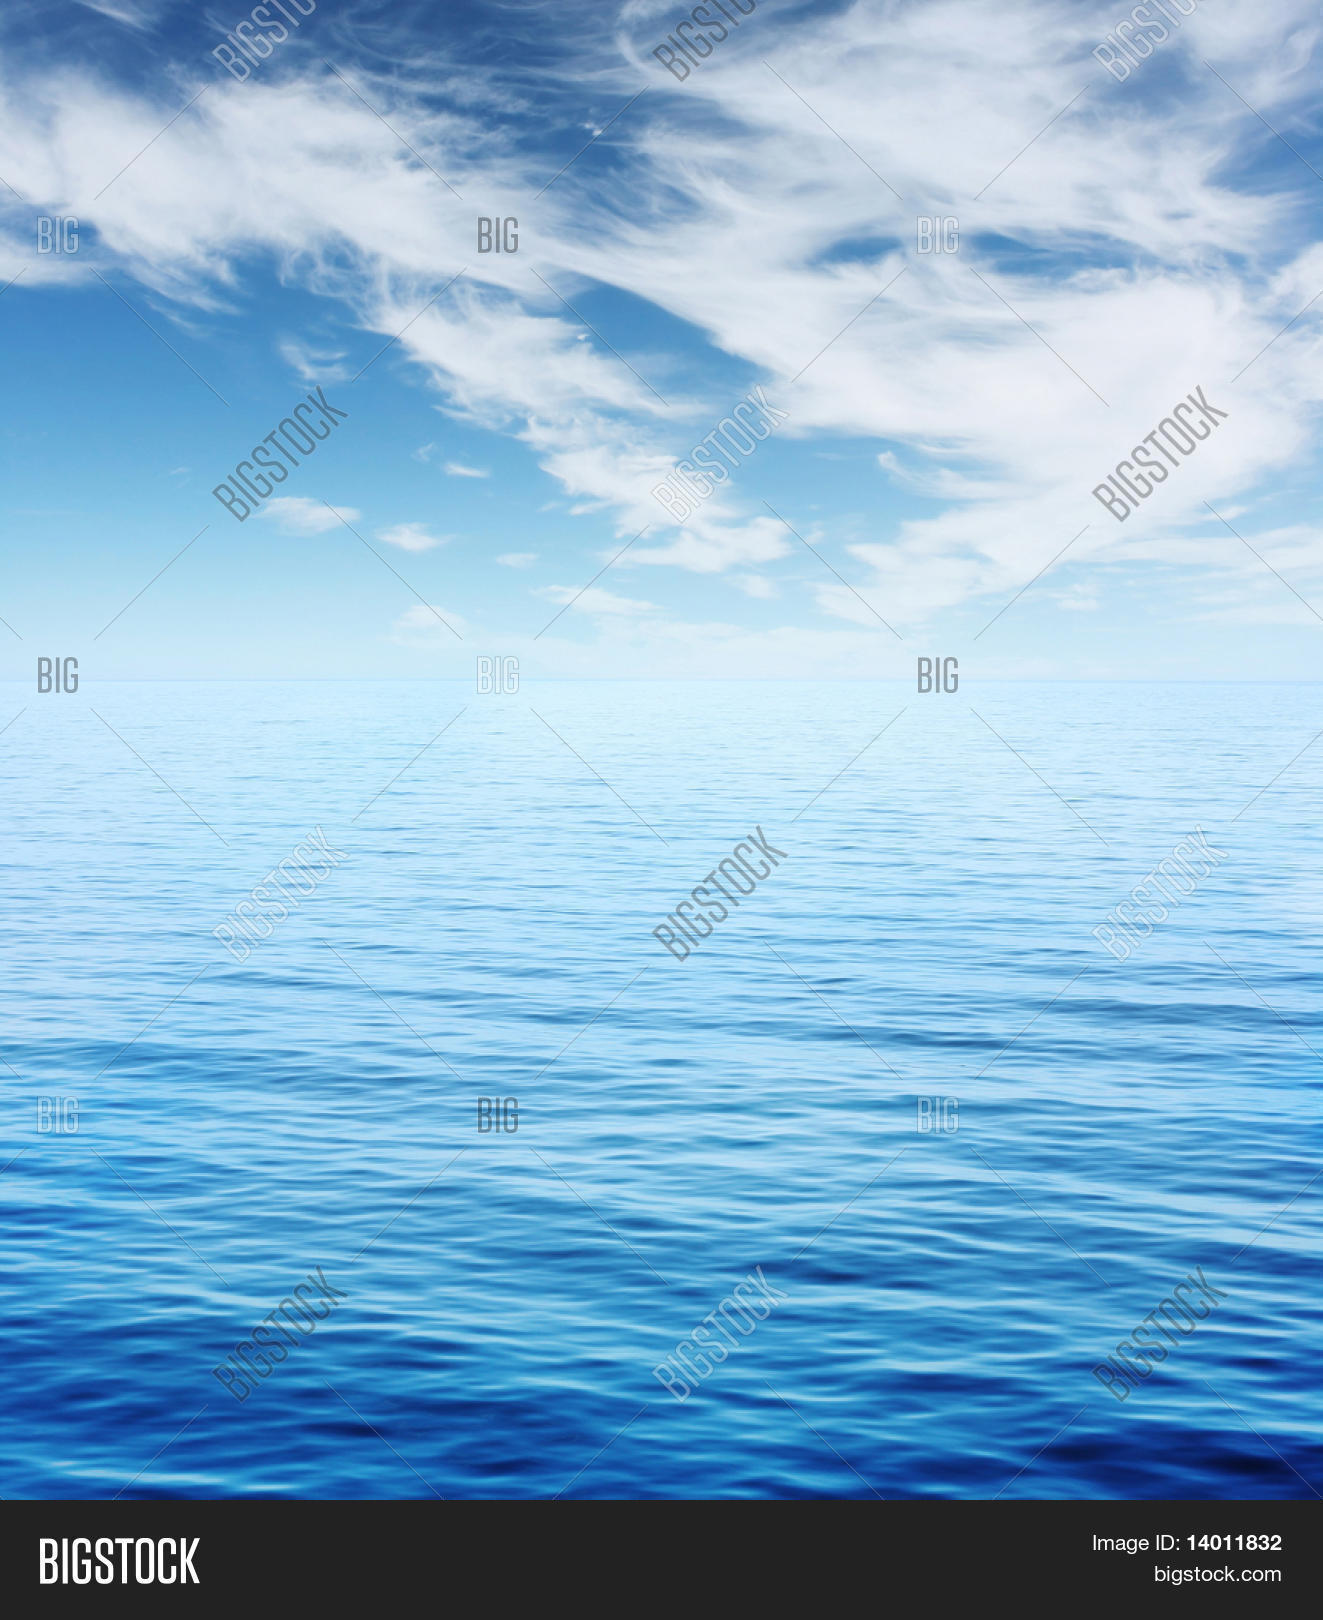 Blue Sea Sky Clouds Image & Photo (Free Trial) | Bigstock